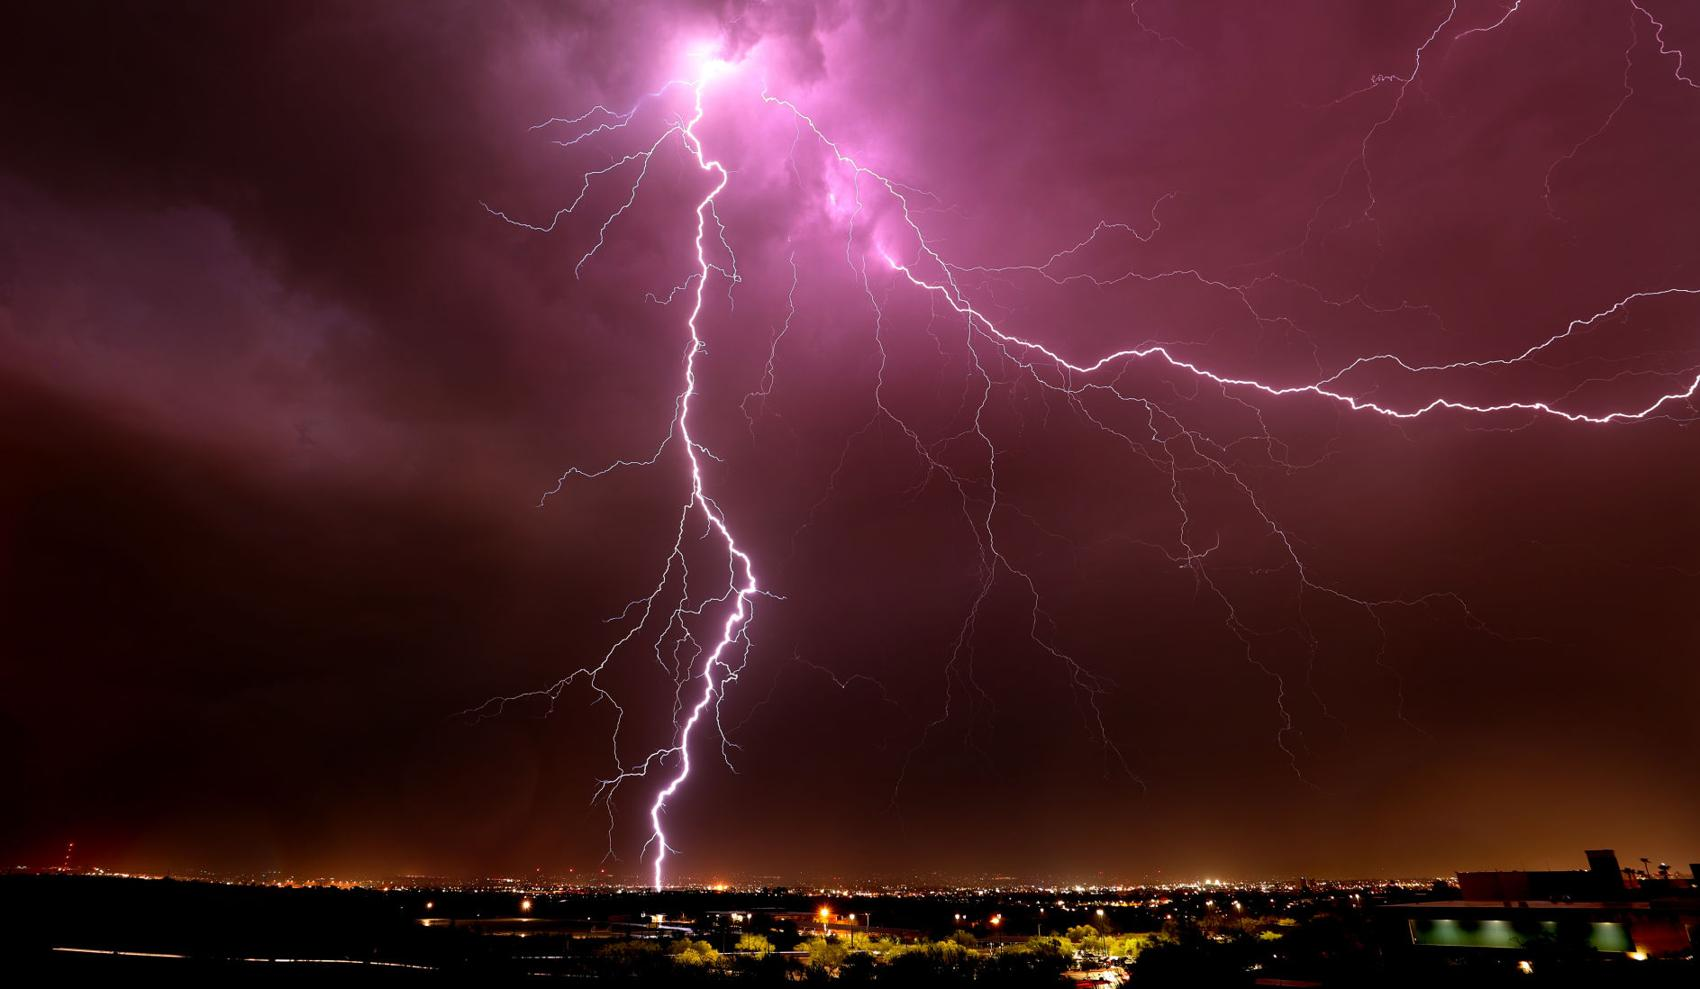 Caption: A lightning bolt strikes in the western part of the city, part of the second of two bands of monsoon storms to roll over the area, Tucson, Ariz., August 28, 2019., Credit: Kelly Presnell / Arizona Daily Star